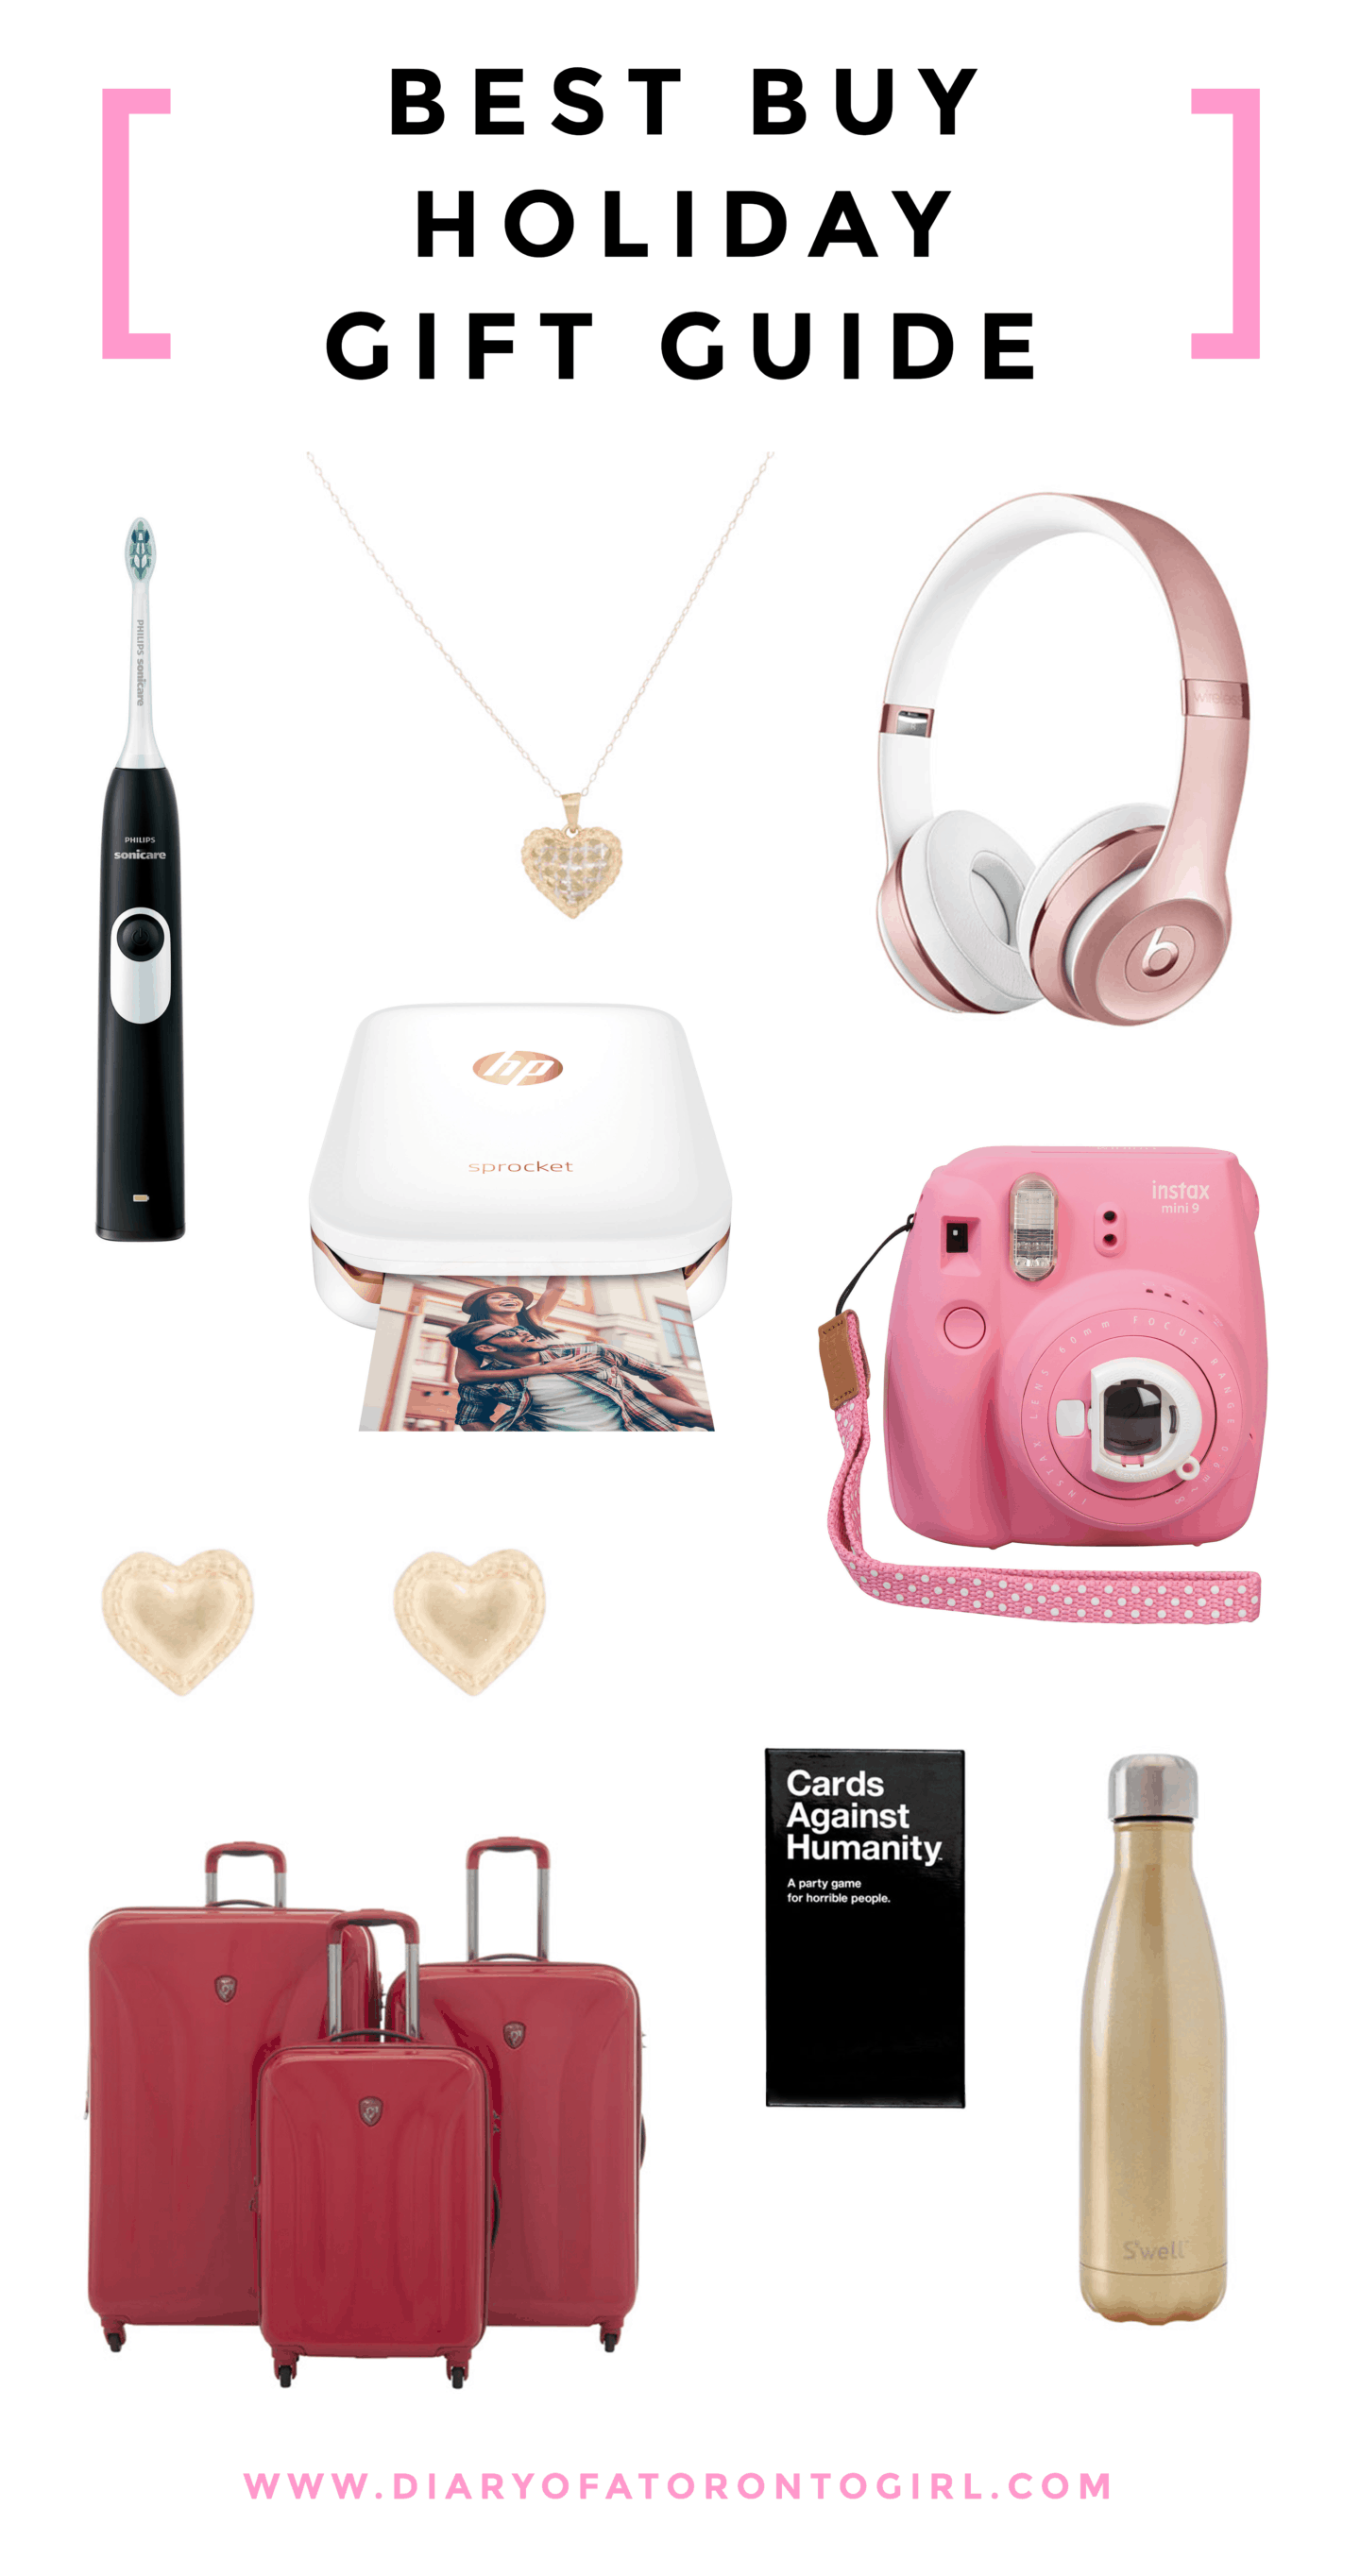 Best Buy Holiday Gift Guide 2018 | Diary of a Toronto Girl